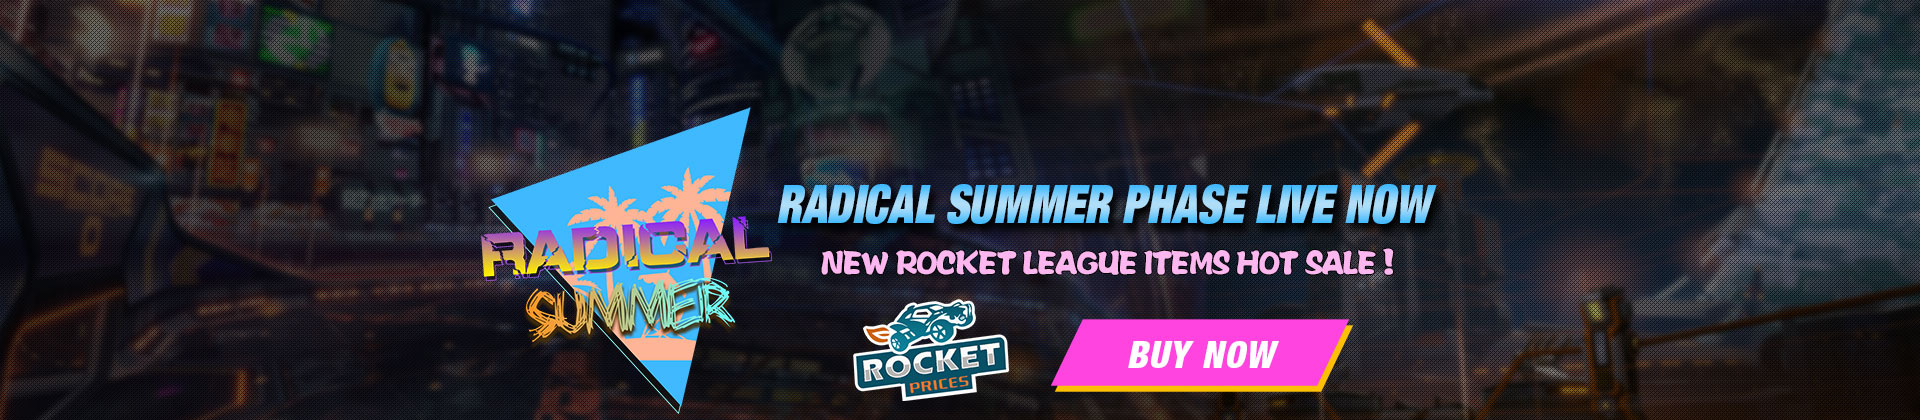 Radical sumer & new crate items